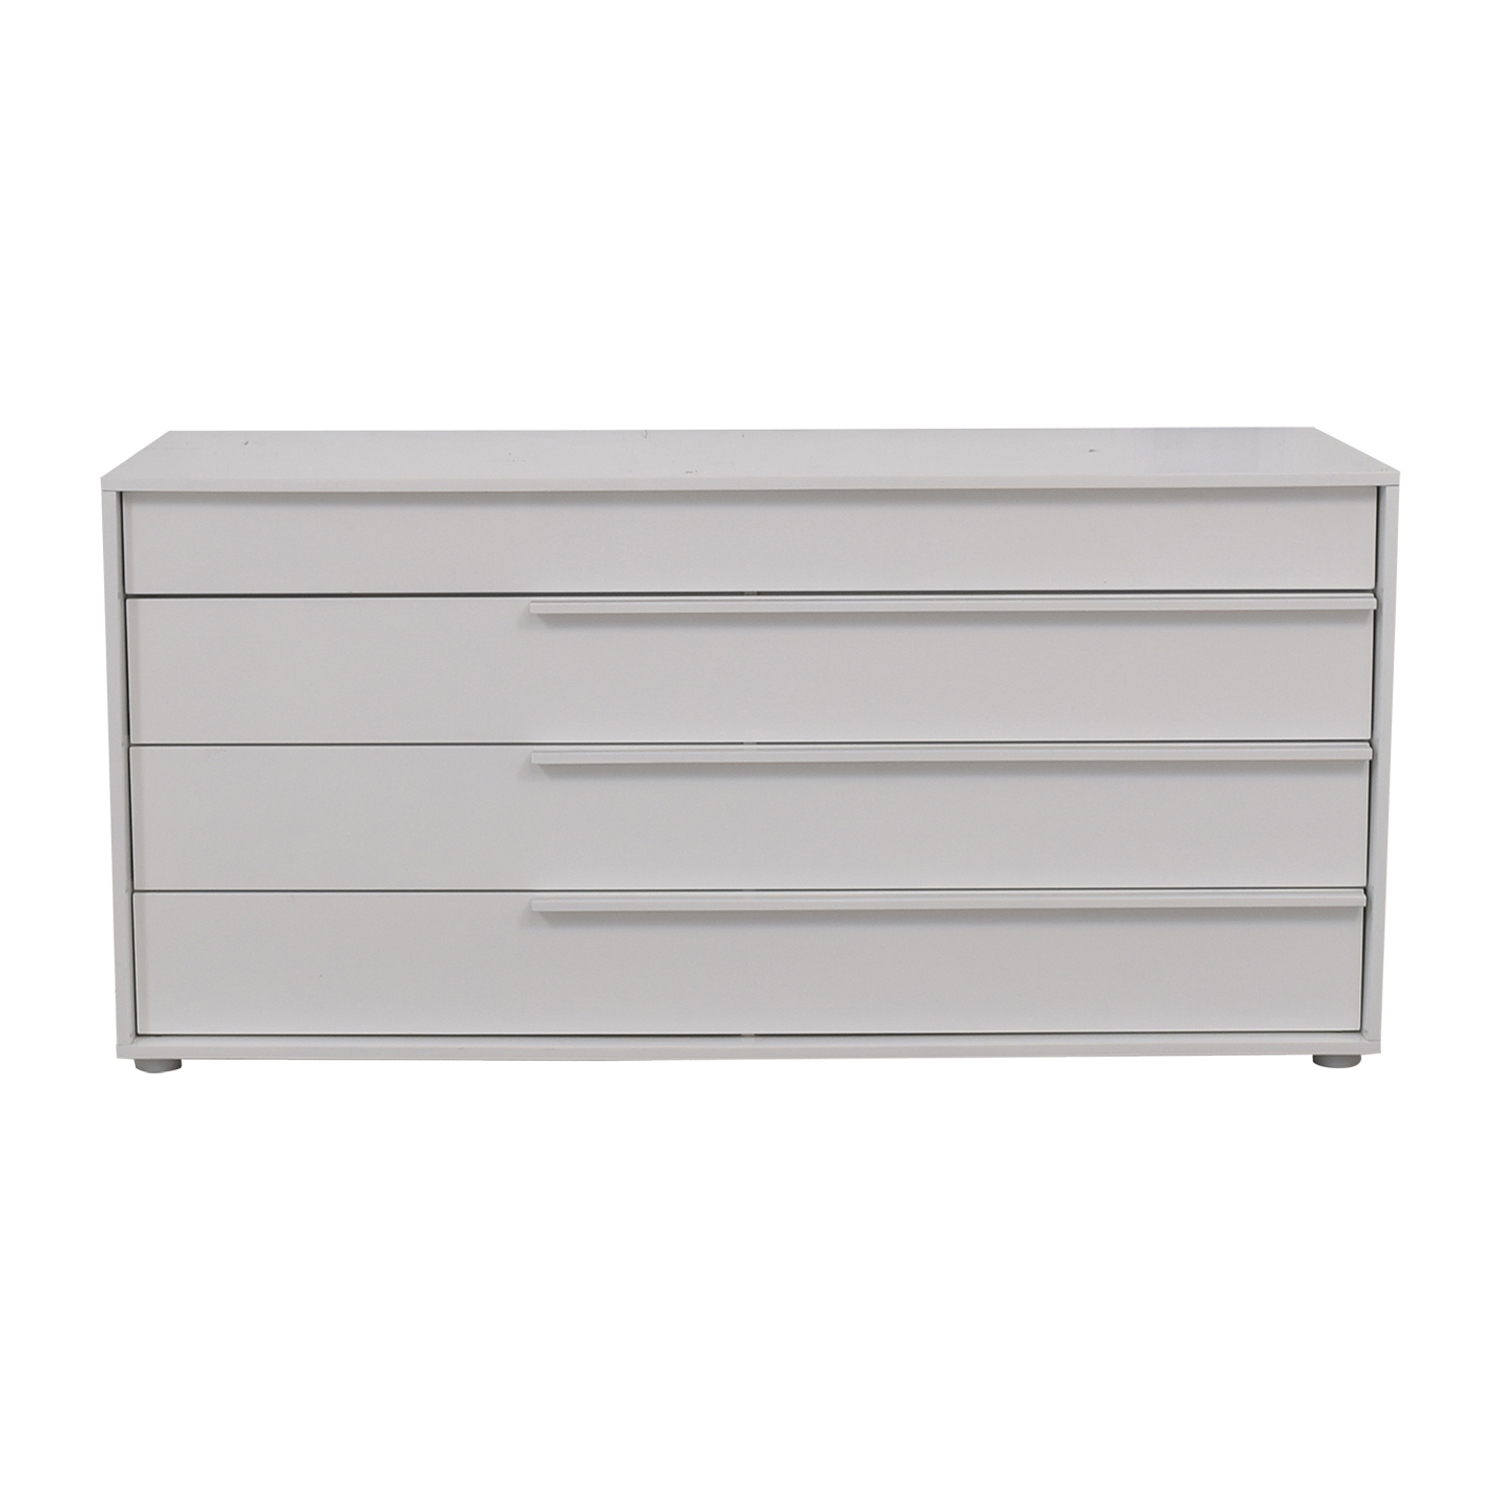 Modloft Modloft Jane Glossy White Four-Drawer Dresser price